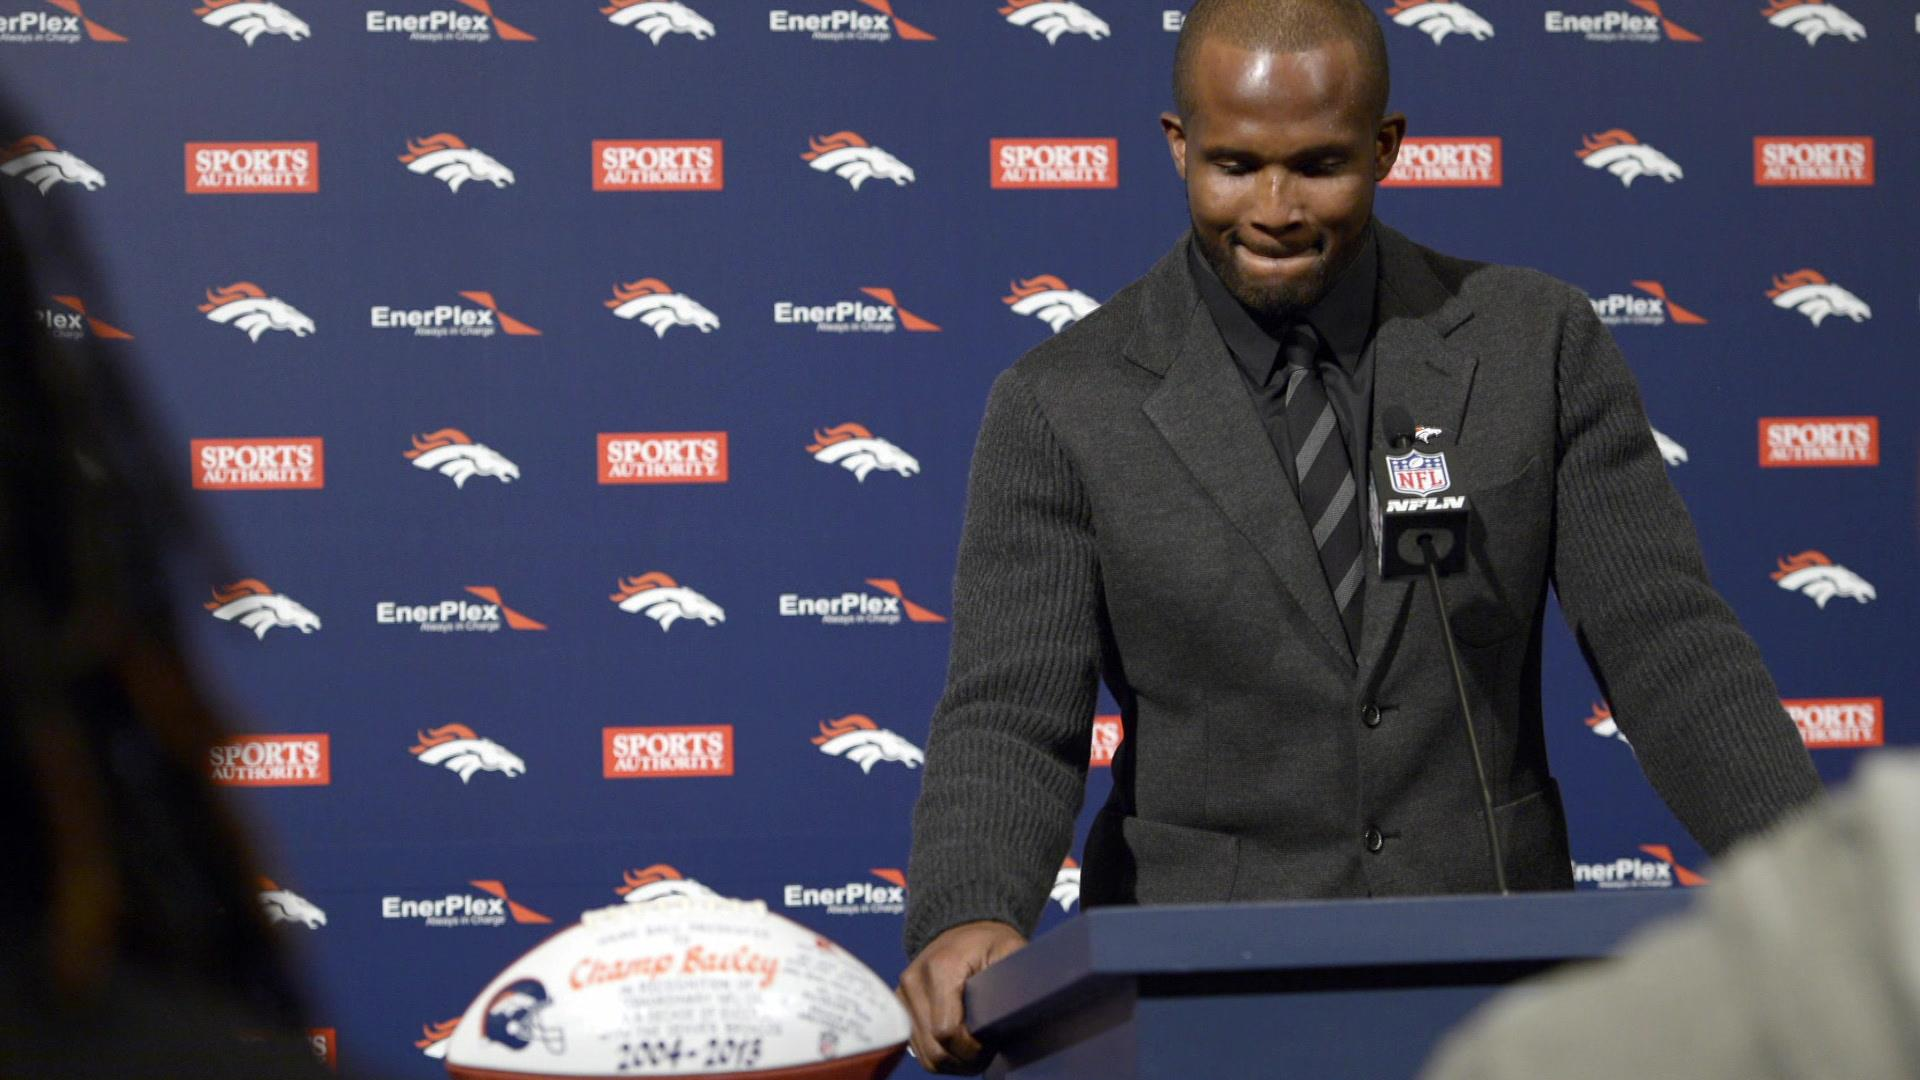 Champ Bailey says Hall of Fame goals began during his youth football